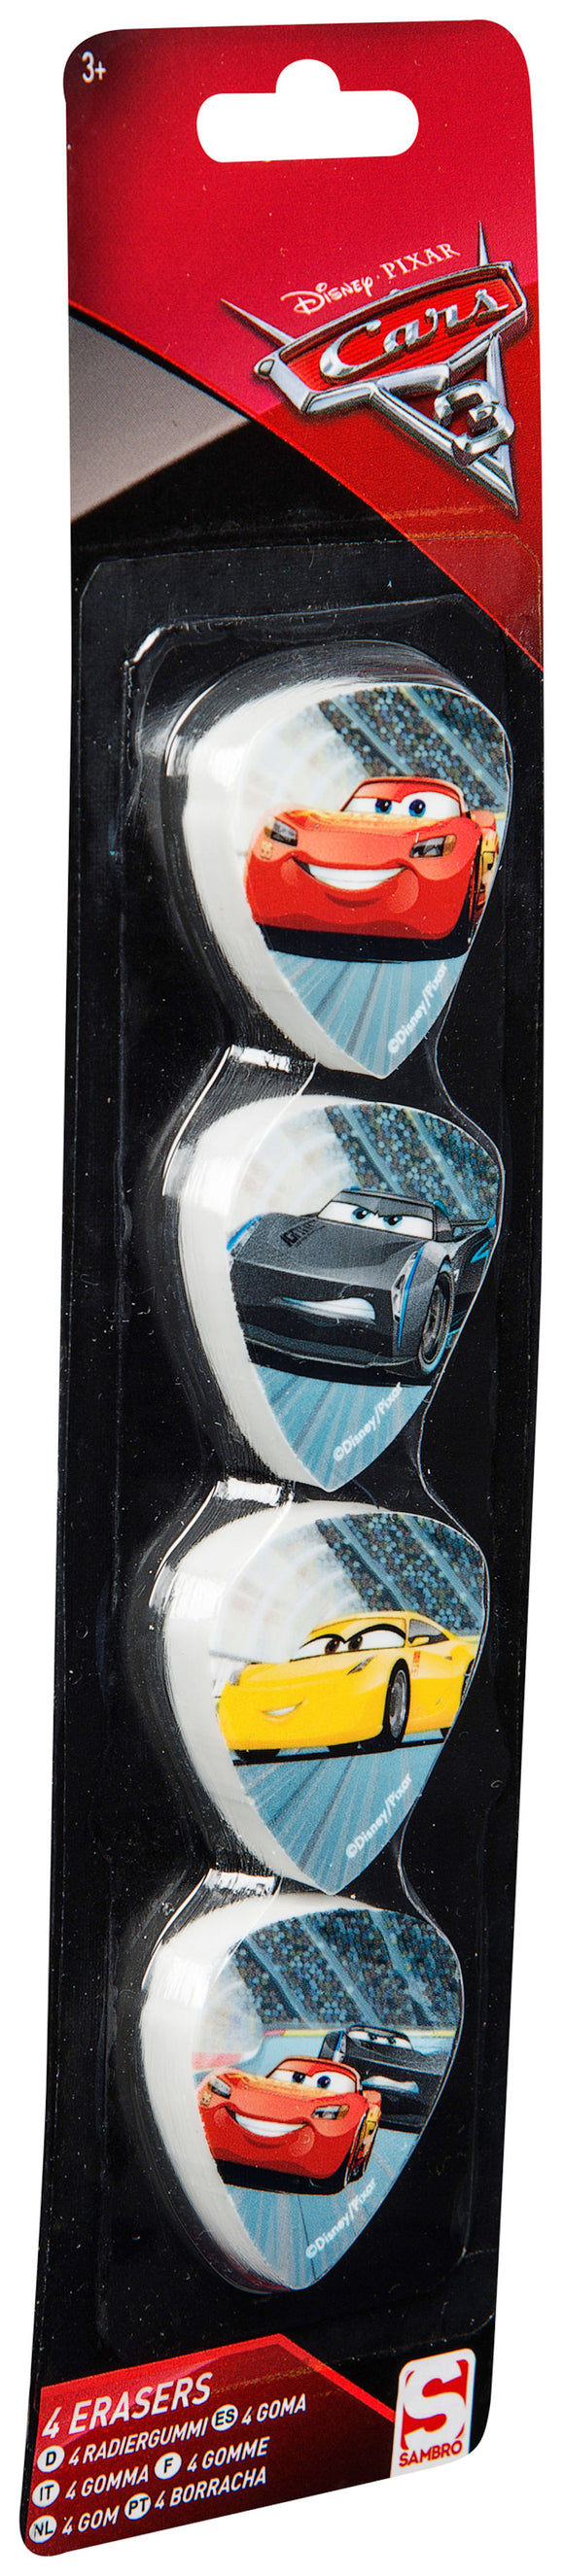 a photo of the product: Cars 3 gummen 4 stuks